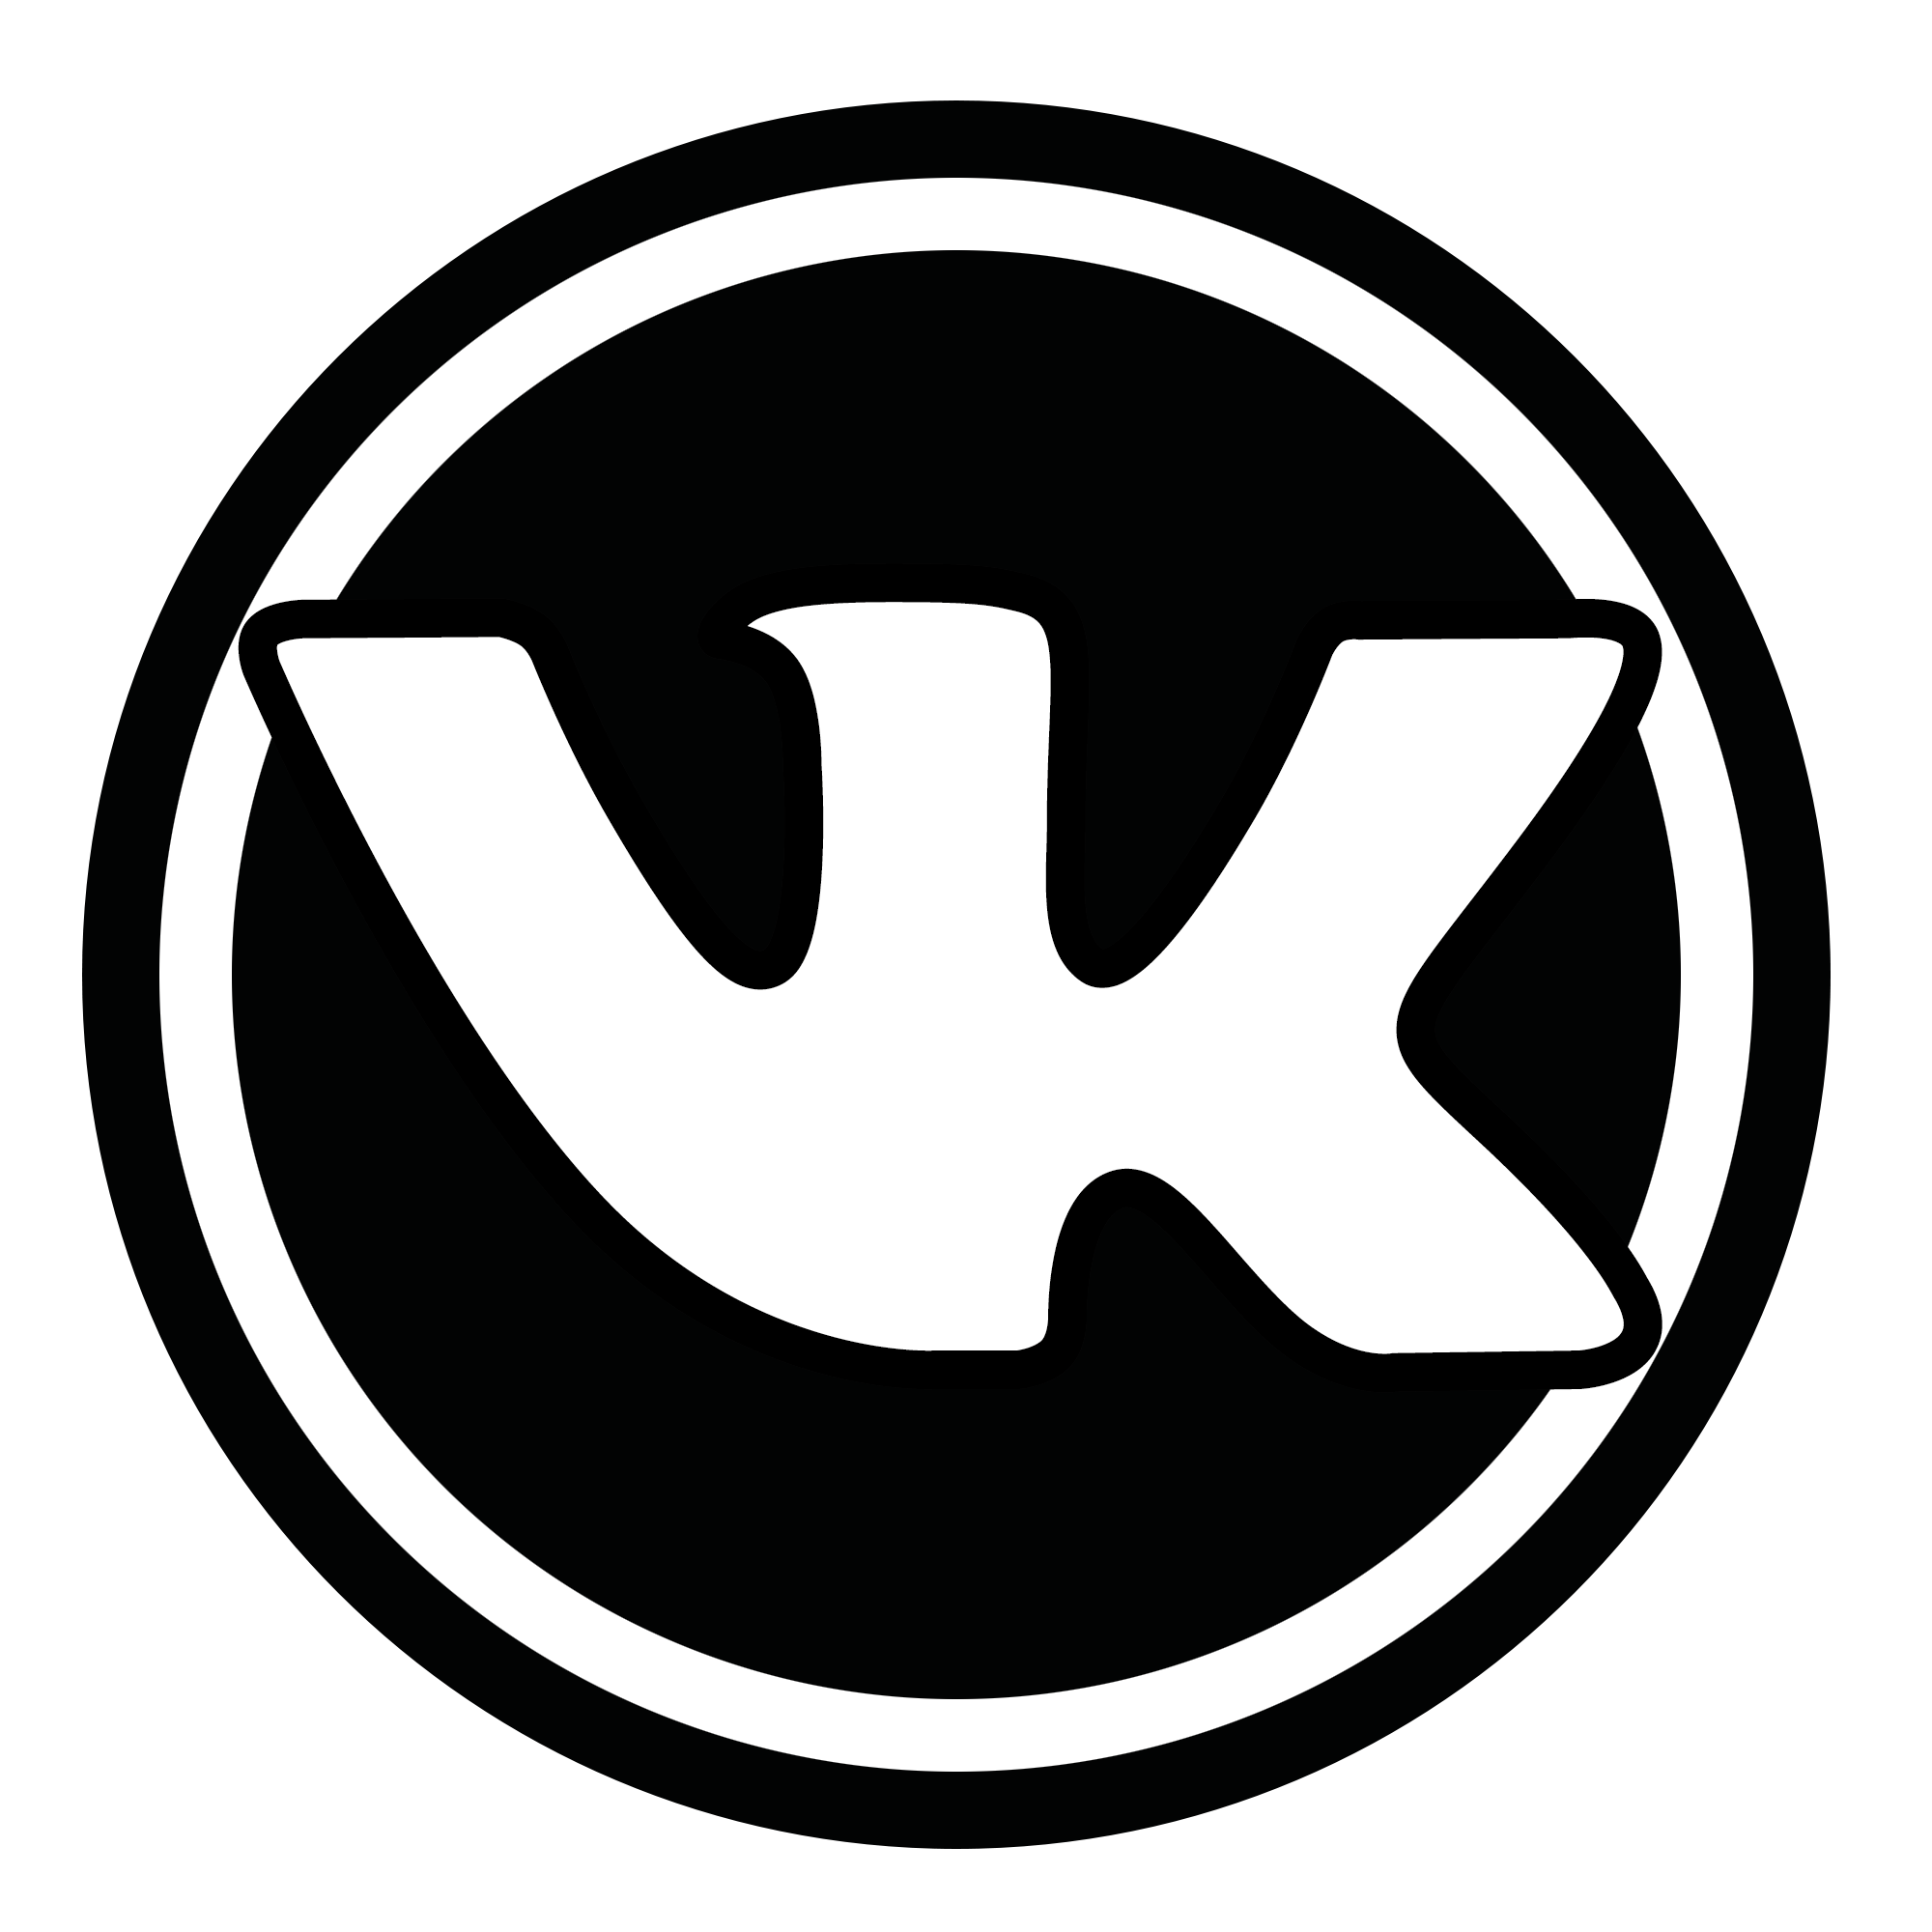 File:B&W Vk icon.png.